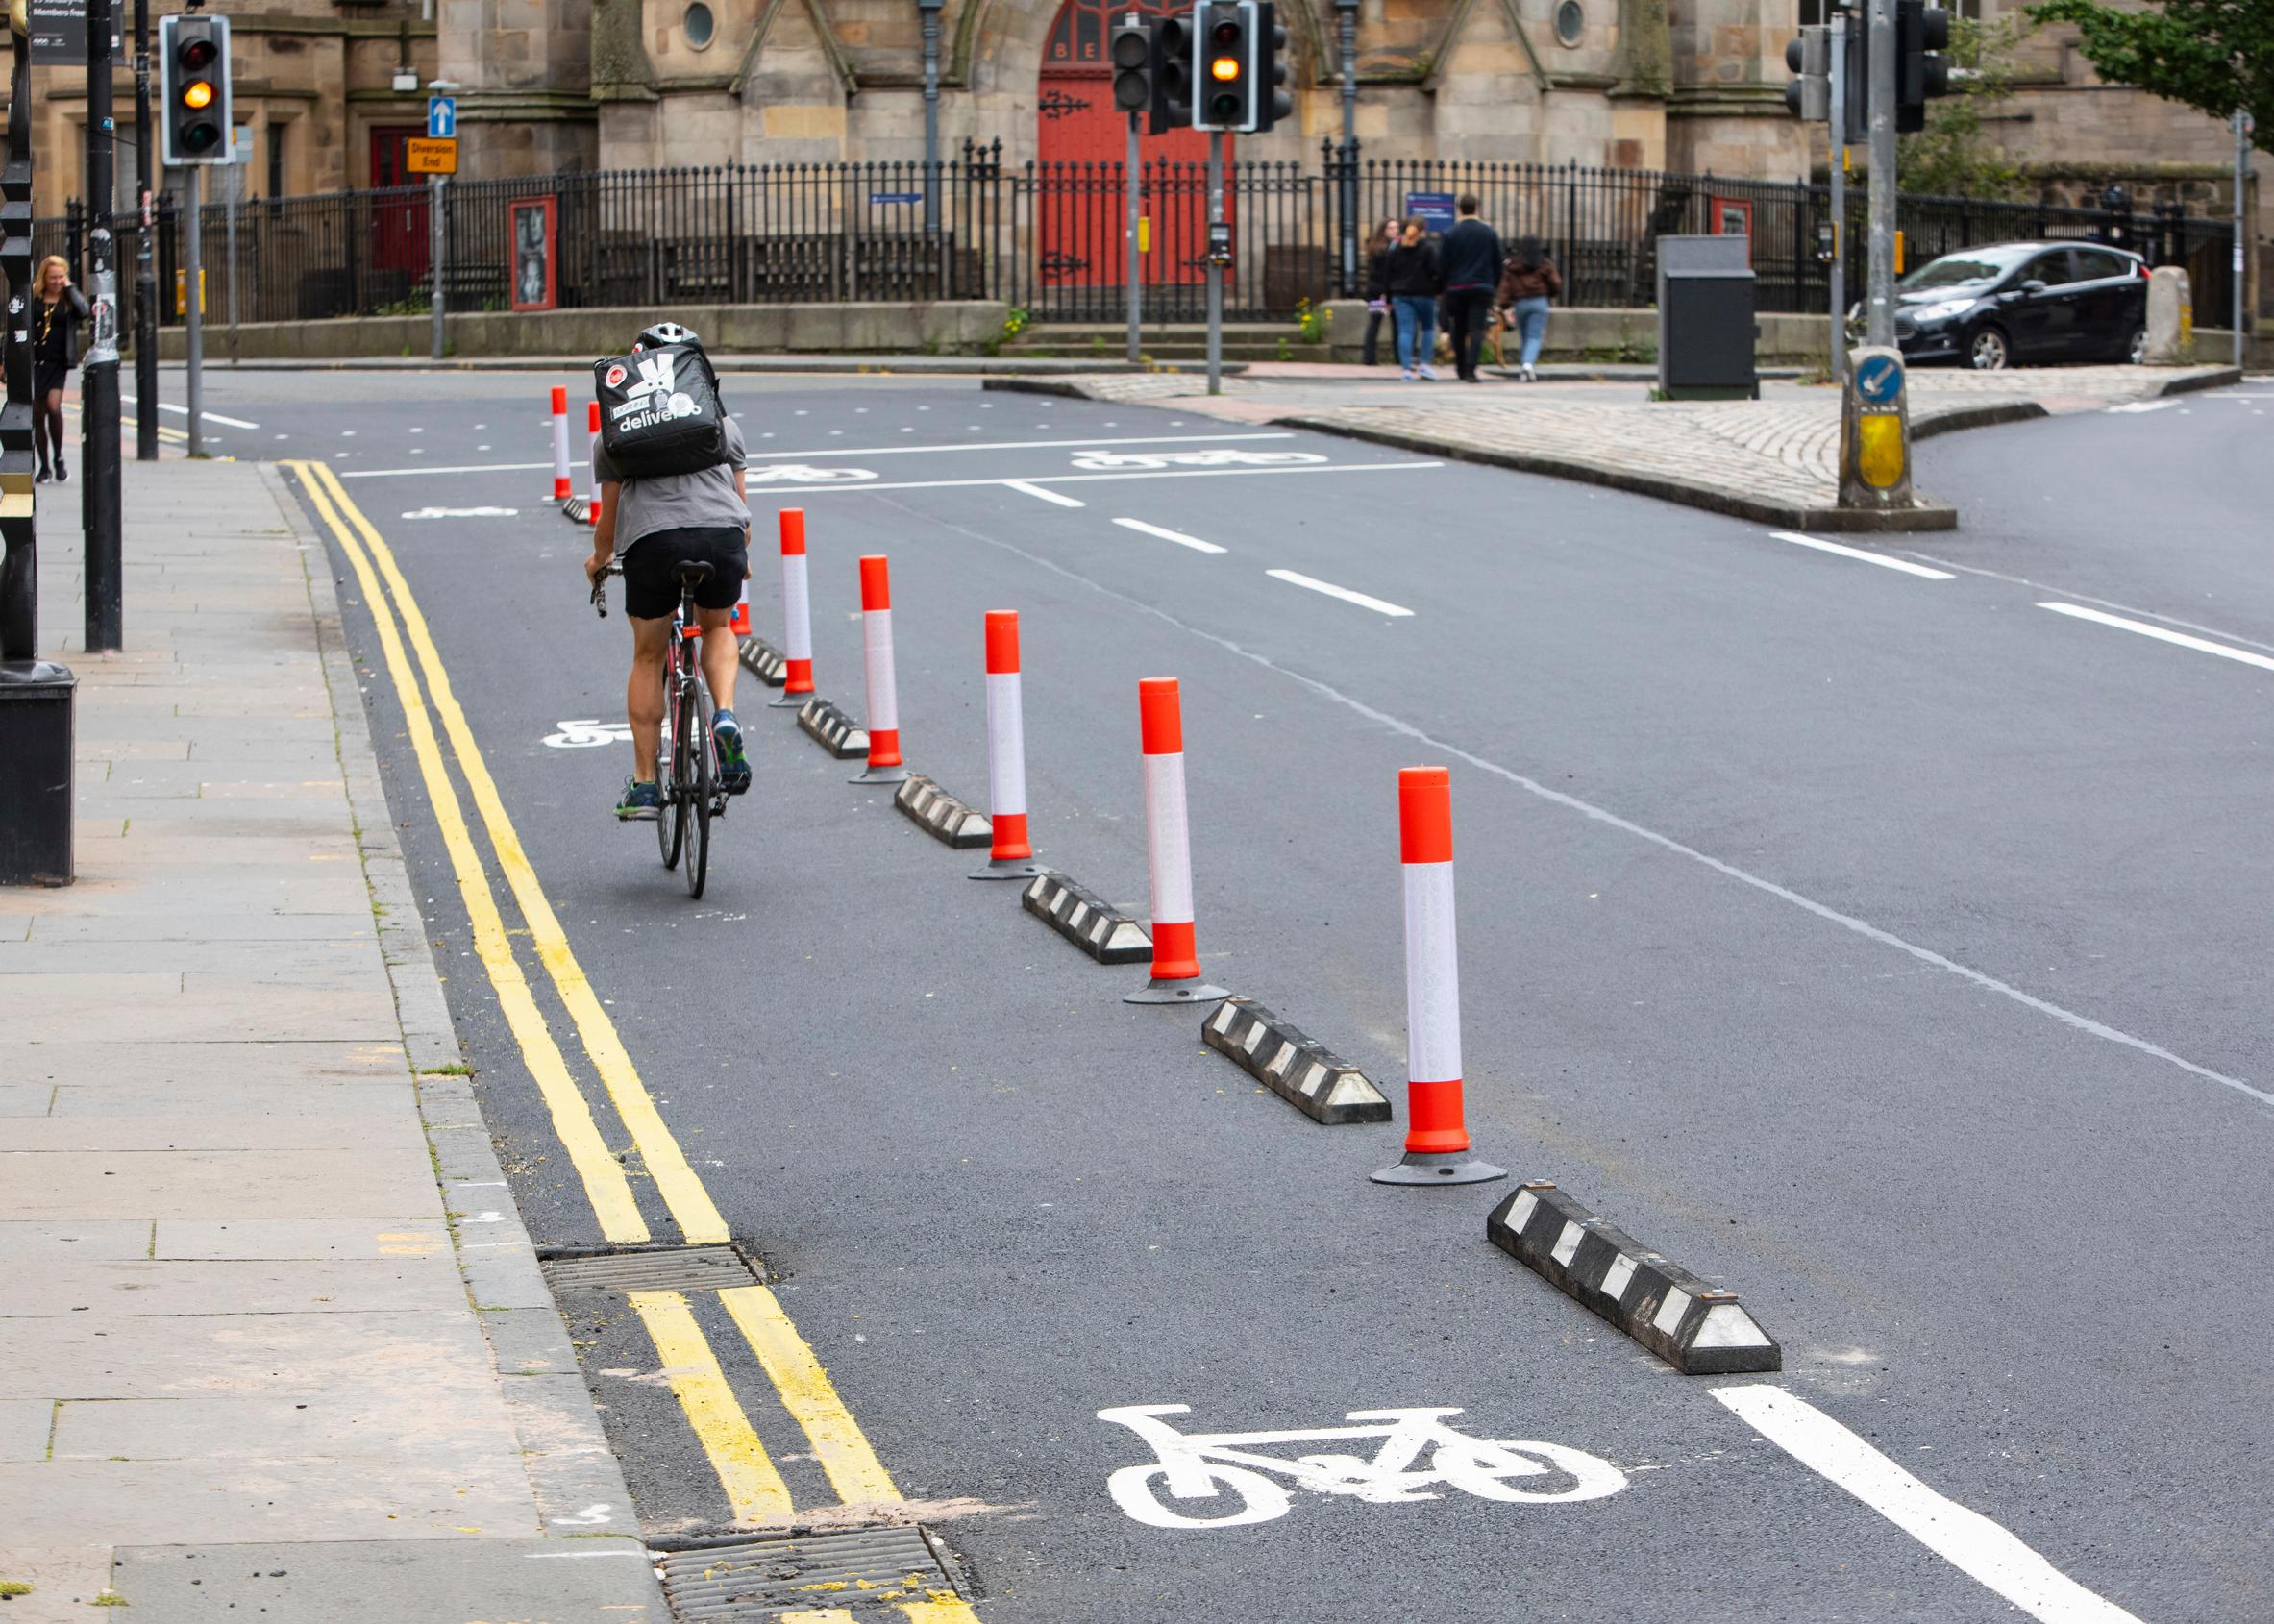 Edinburgh has been creating new space for cyclists and pedestrians